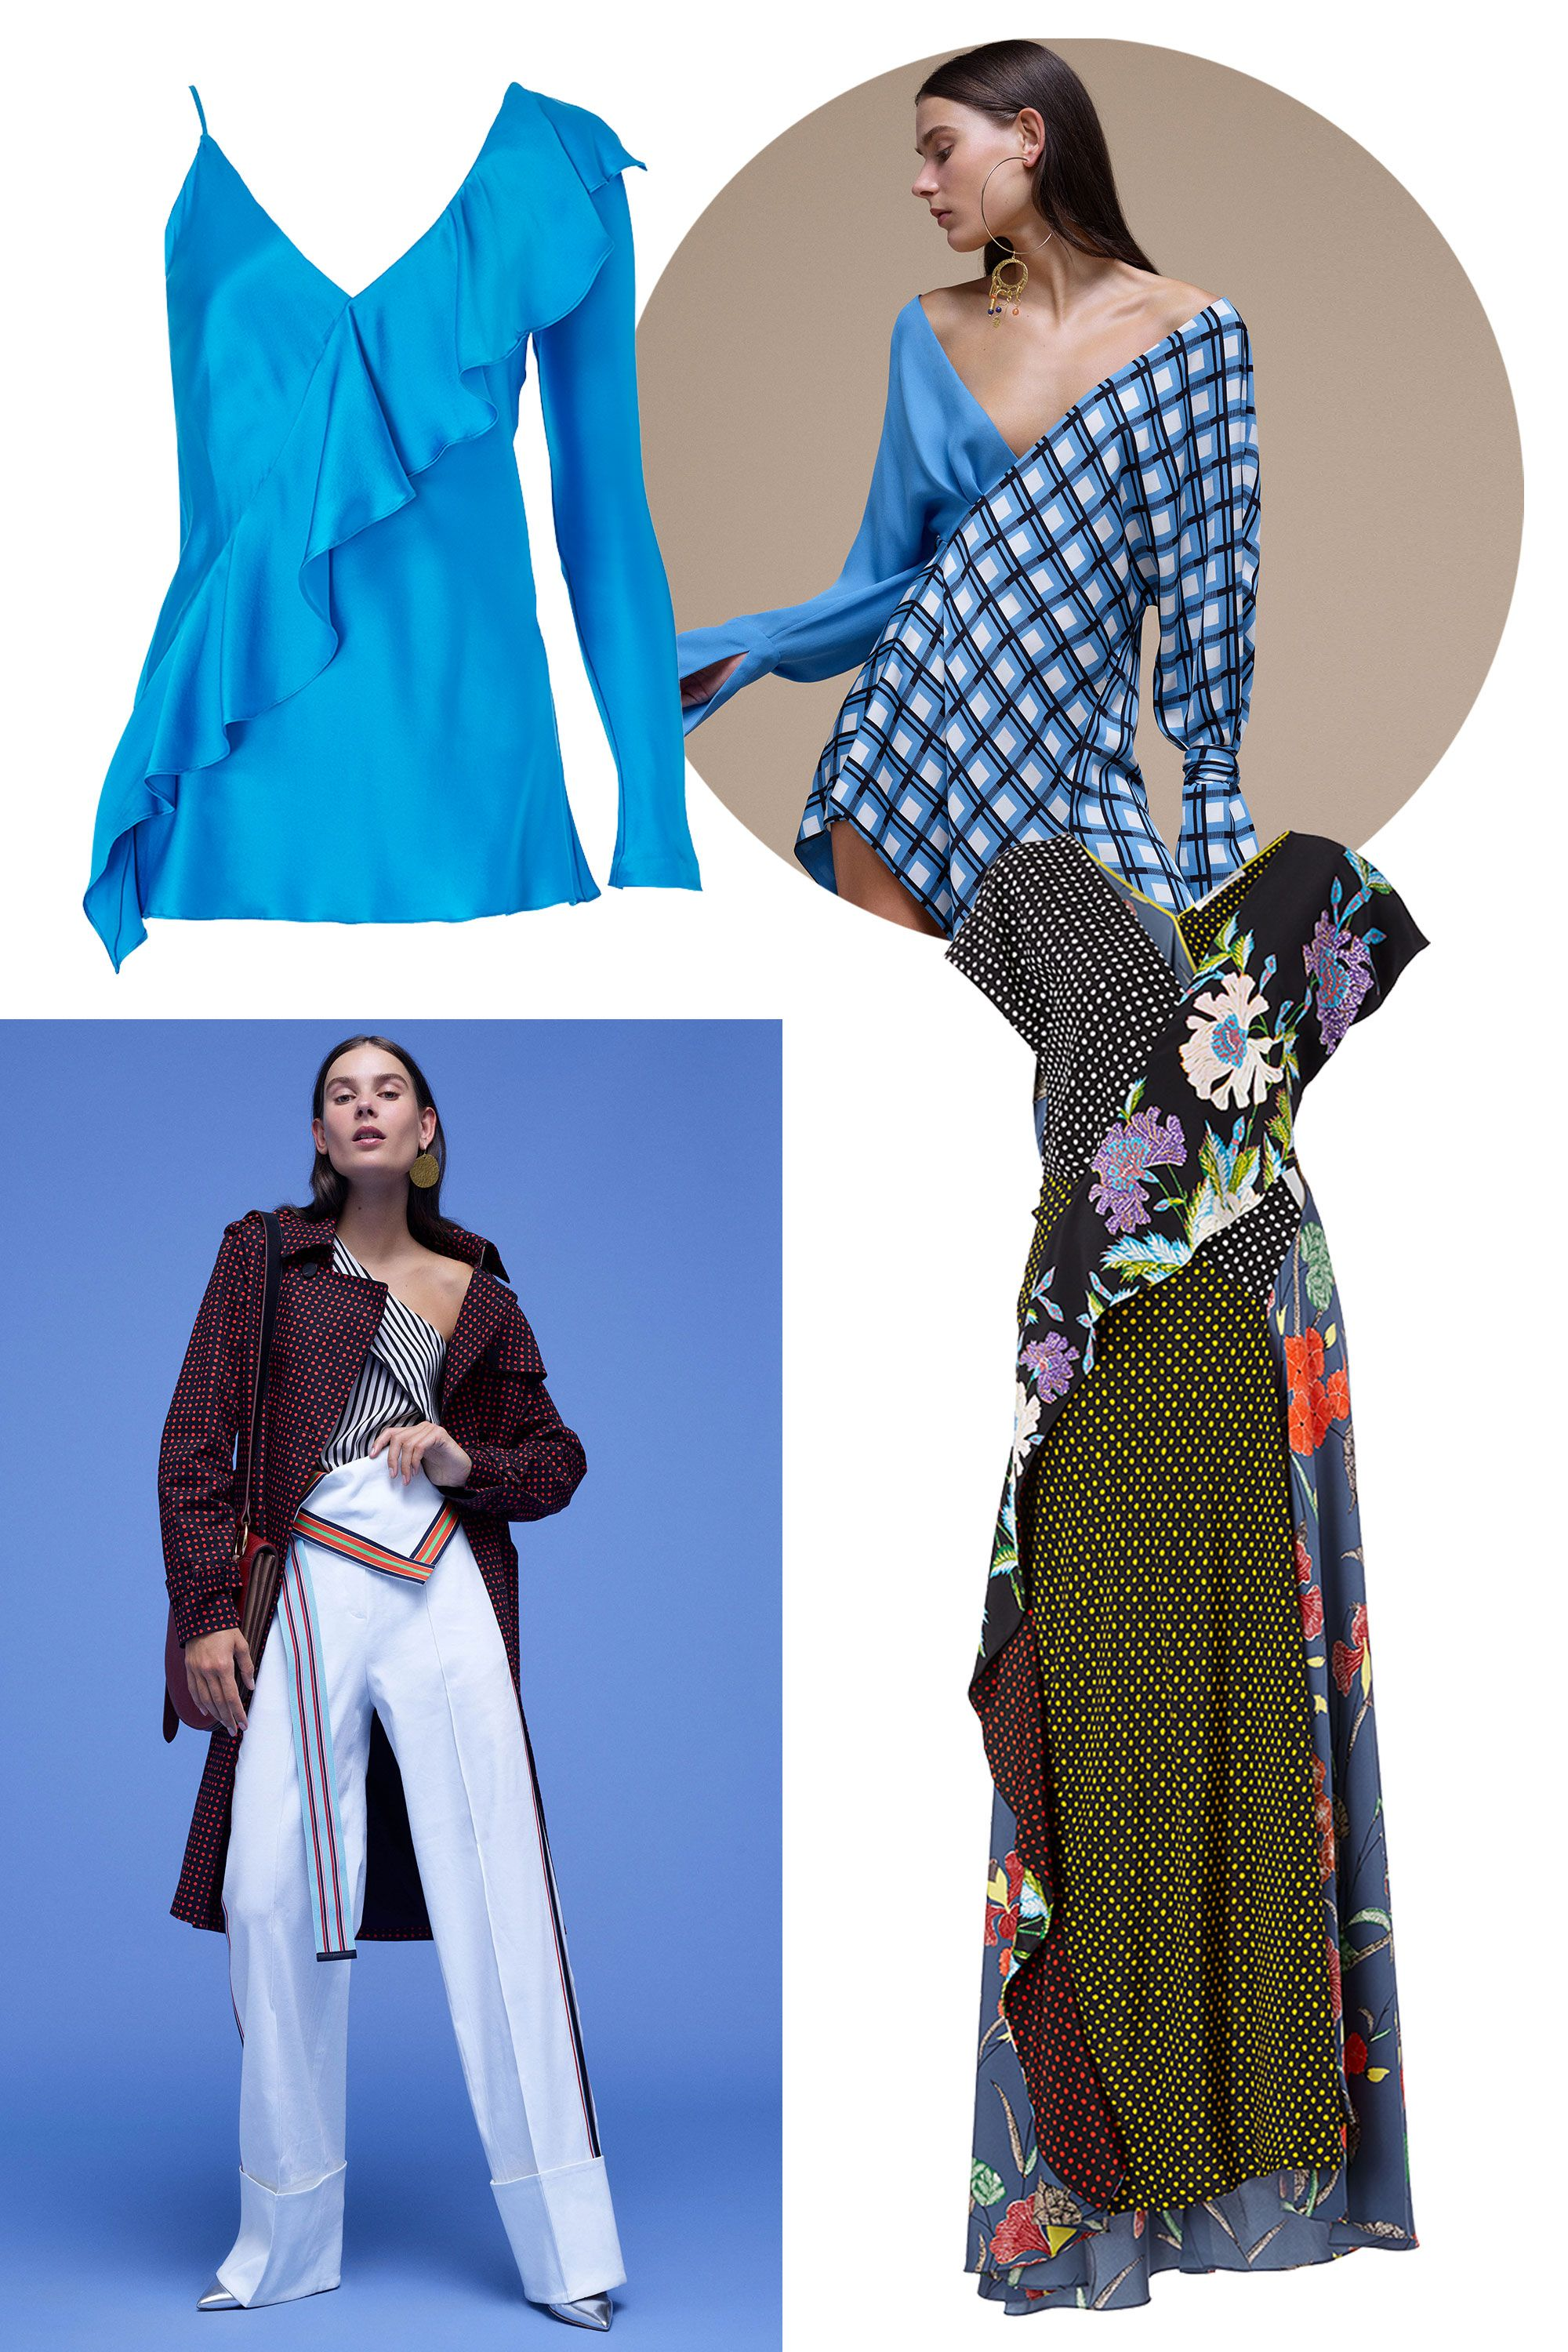 "<p>Now that&nbsp&#x3B;British-born designer&nbsp&#x3B;Jonathan Saunders first collection for&nbsp&#x3B;Diane von Furstenberg is hitting stores (Saunders joined DVF&nbsp&#x3B;as chief creative officer in Spring 2017), all heads are turned to see what he'll send down the runway for Fall/Winter 2017. His debut collection was lauded by the industry for its bright, clashing patterns and daring silhouettes, both of which are a world away&nbsp&#x3B;from Furstenberg's traditional wrap dress.&nbsp&#x3B;&nbsp&#x3B;&nbsp&#x3B;<span class=""redactor-invisible-space"" data-verified=""redactor"" data-redactor-tag=""span"" data-redactor-class=""redactor-invisible-space""></span></p><p><strong data-redactor-tag=""strong"" data-verified=""redactor""><em data-redactor-tag=""em"" data-verified=""redactor"">Clockwise from top left:&nbsp&#x3B;</em></strong><span class=""redactor-invisible-space"" data-verified=""redactor"" data-redactor-tag=""span"" data-redactor-class=""redactor-invisible-space""><em data-redactor-tag=""em"" data-verified=""redactor""><em data-redactor-tag=""em"">Diane von Furstenberg&nbsp&#x3B;</em><span class=""redactor-invisible-space"" data-verified=""redactor"" data-redactor-tag=""span"" data-redactor-class=""redactor-invisible-space""></span> top, similar styles at <strong data-redactor-tag=""strong"" data-verified=""redactor""><a href=""http://shop.nordstrom.com/sr?contextualcategoryid=0&amp&#x3B;origin=keywordsearch&amp&#x3B;keyword=diane+von+furstenberg&amp&#x3B;top=66"" target=""_blank"" data-tracking-id=""recirc-text-link"">nordstrom.com</a></strong>&#x3B; Diane von Furstenberg Spring '17 lookbook shot, <em data-redactor-tag=""em"">Diane von Furstenberg&nbsp&#x3B;</em><span class=""redactor-invisible-space"" data-verified=""redactor"" data-redactor-tag=""span"" data-redactor-class=""redactor-invisible-space""></span> Wrap Dress, $698,<strong data-redactor-tag=""strong"" data-verified=""redactor""><a href=""http://shop.nordstrom.com/s/diane-von-furstenberg-faux-wrap-silk-maxi-dress/4558371?origin=keywordsearch-personalizedsort&amp&#x3B;fashioncolor=FERMA%20BLUE"" target=""_blank"" data-tracking-id=""recirc-text-link"">nordstrom.com</a></strong>&#x3B;&nbsp&#x3B;Diane von Furstenberg Spring '17 lookbook shot</em><span class=""redactor-invisible-space"" data-verified=""redactor"" data-redactor-tag=""span"" data-redactor-class=""redactor-invisible-space""><em data-redactor-tag=""em"" data-verified=""redactor"">.&nbsp&#x3B;</em></span></span><br></p>"